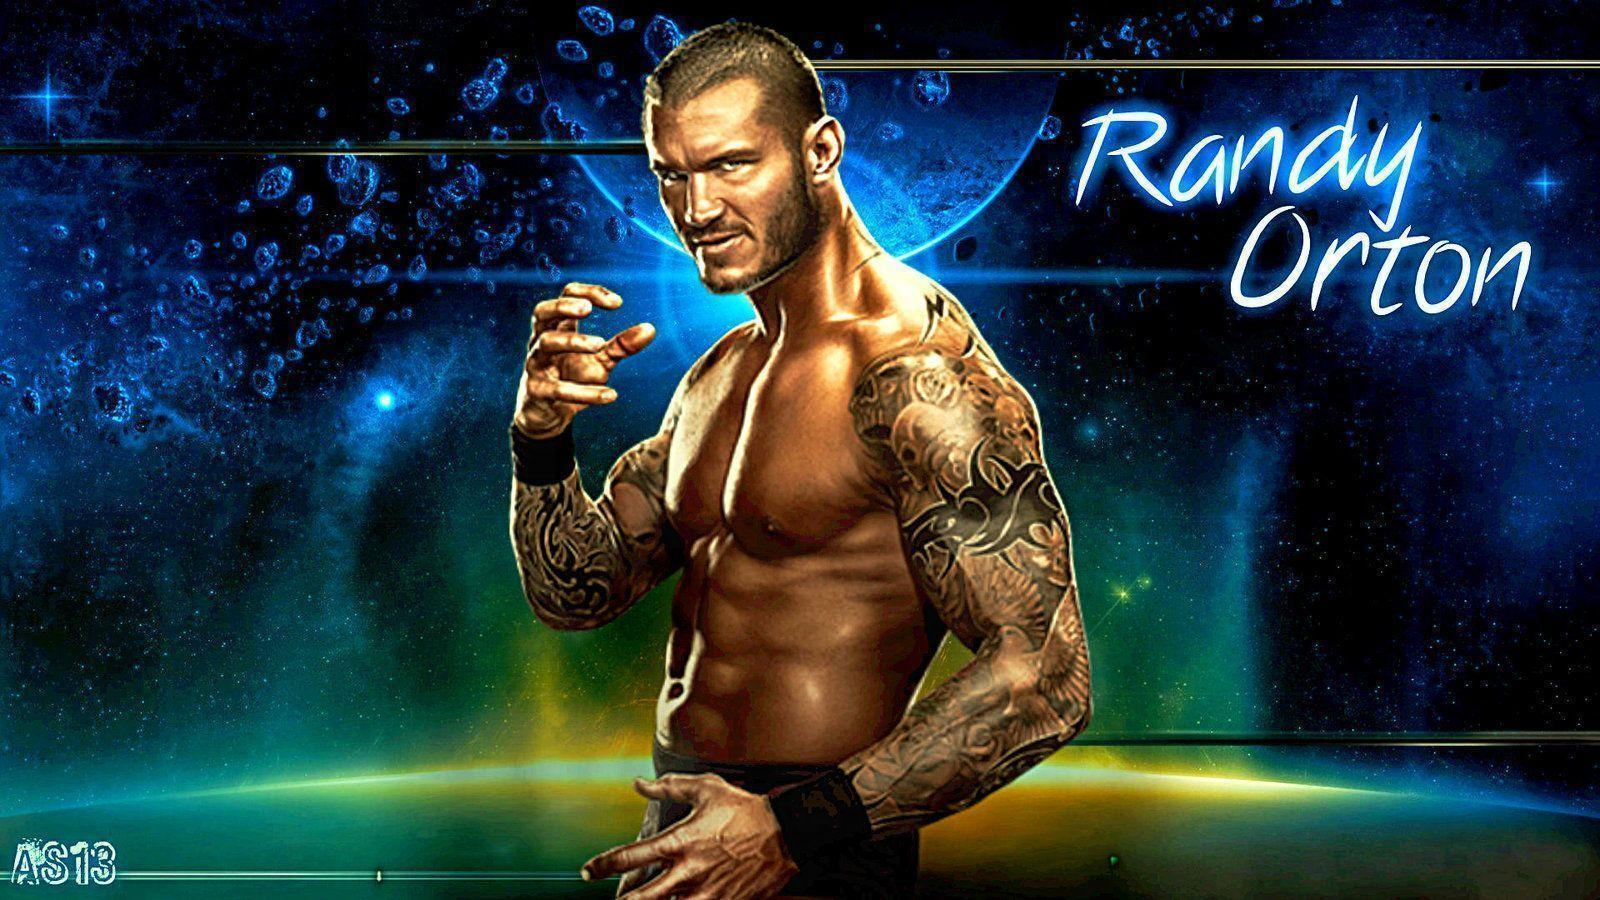 Randy Orton Wallpapers - WallpaperSafari